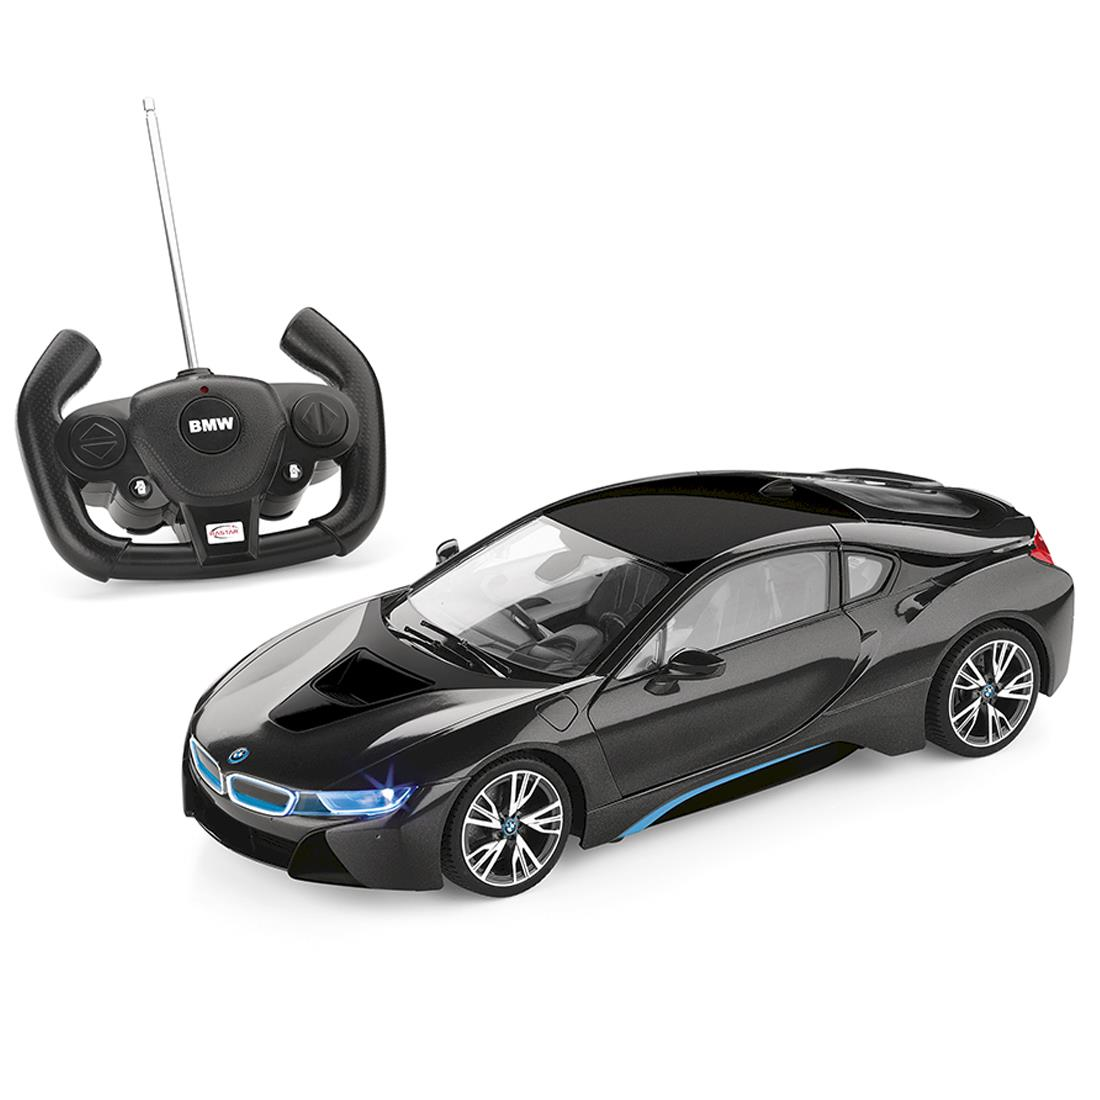 BMW i8 RC Miniature